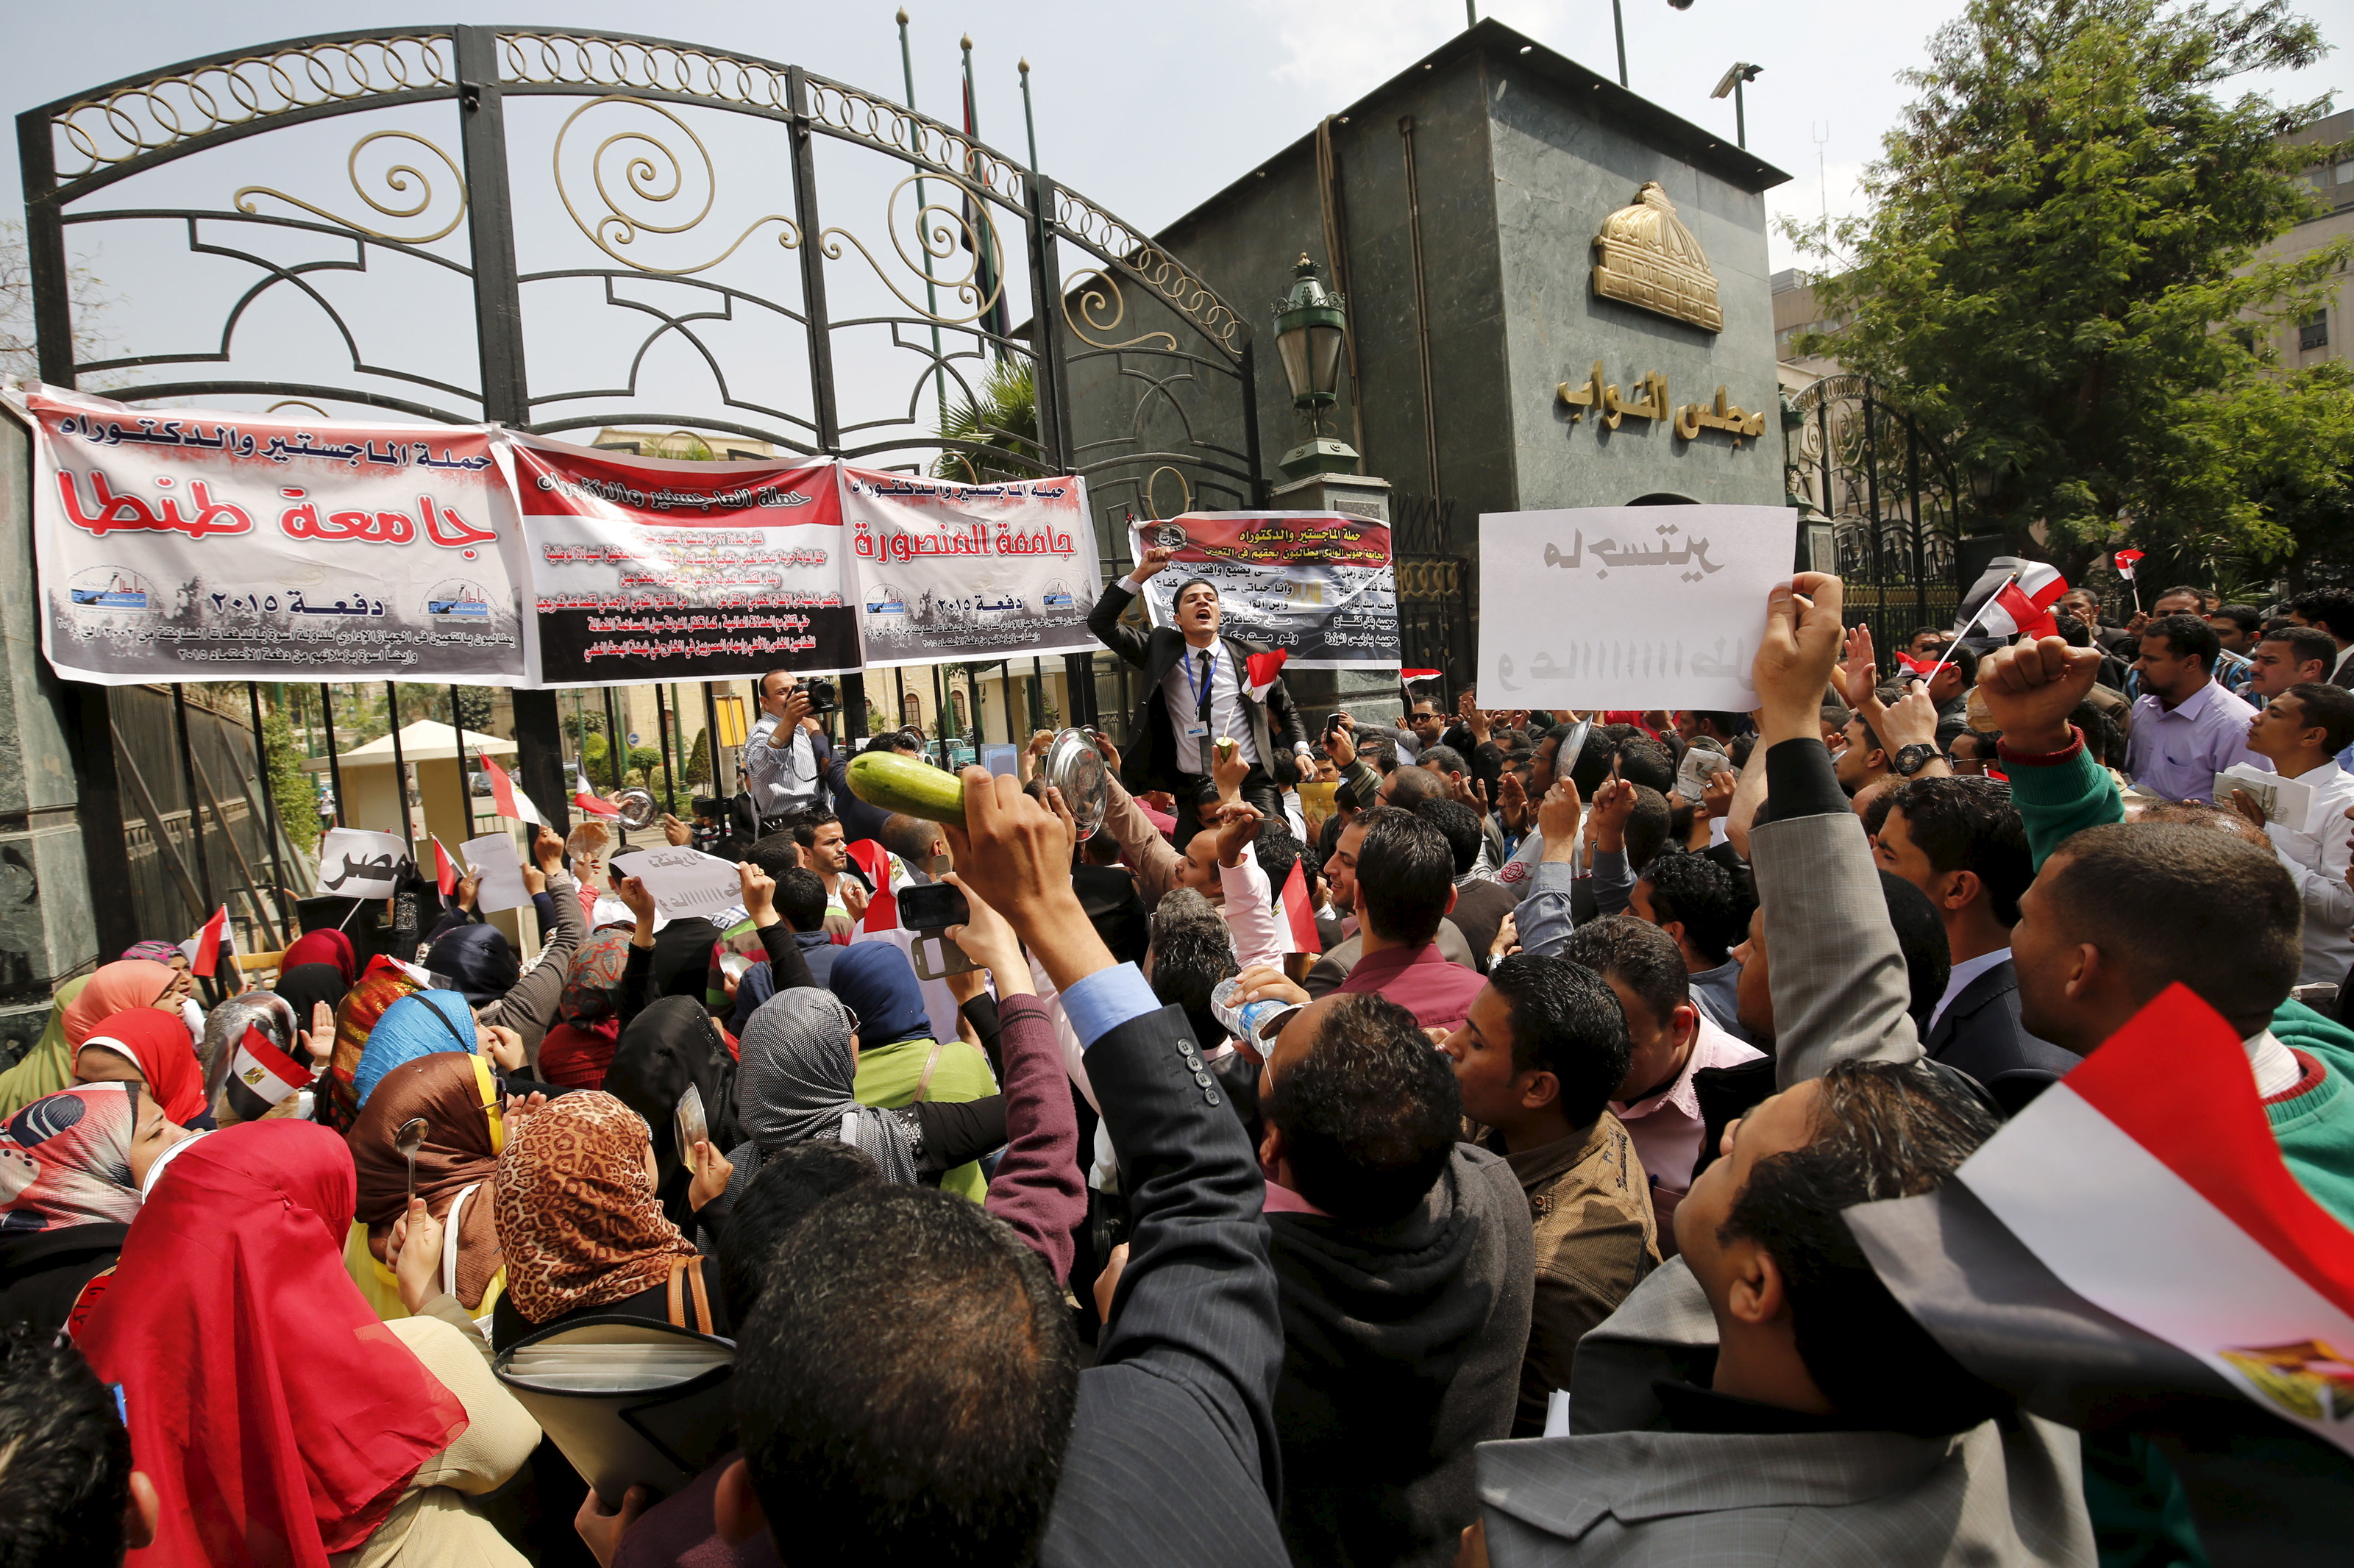 Unemployed graduates in Egypt shout anti-government slogans